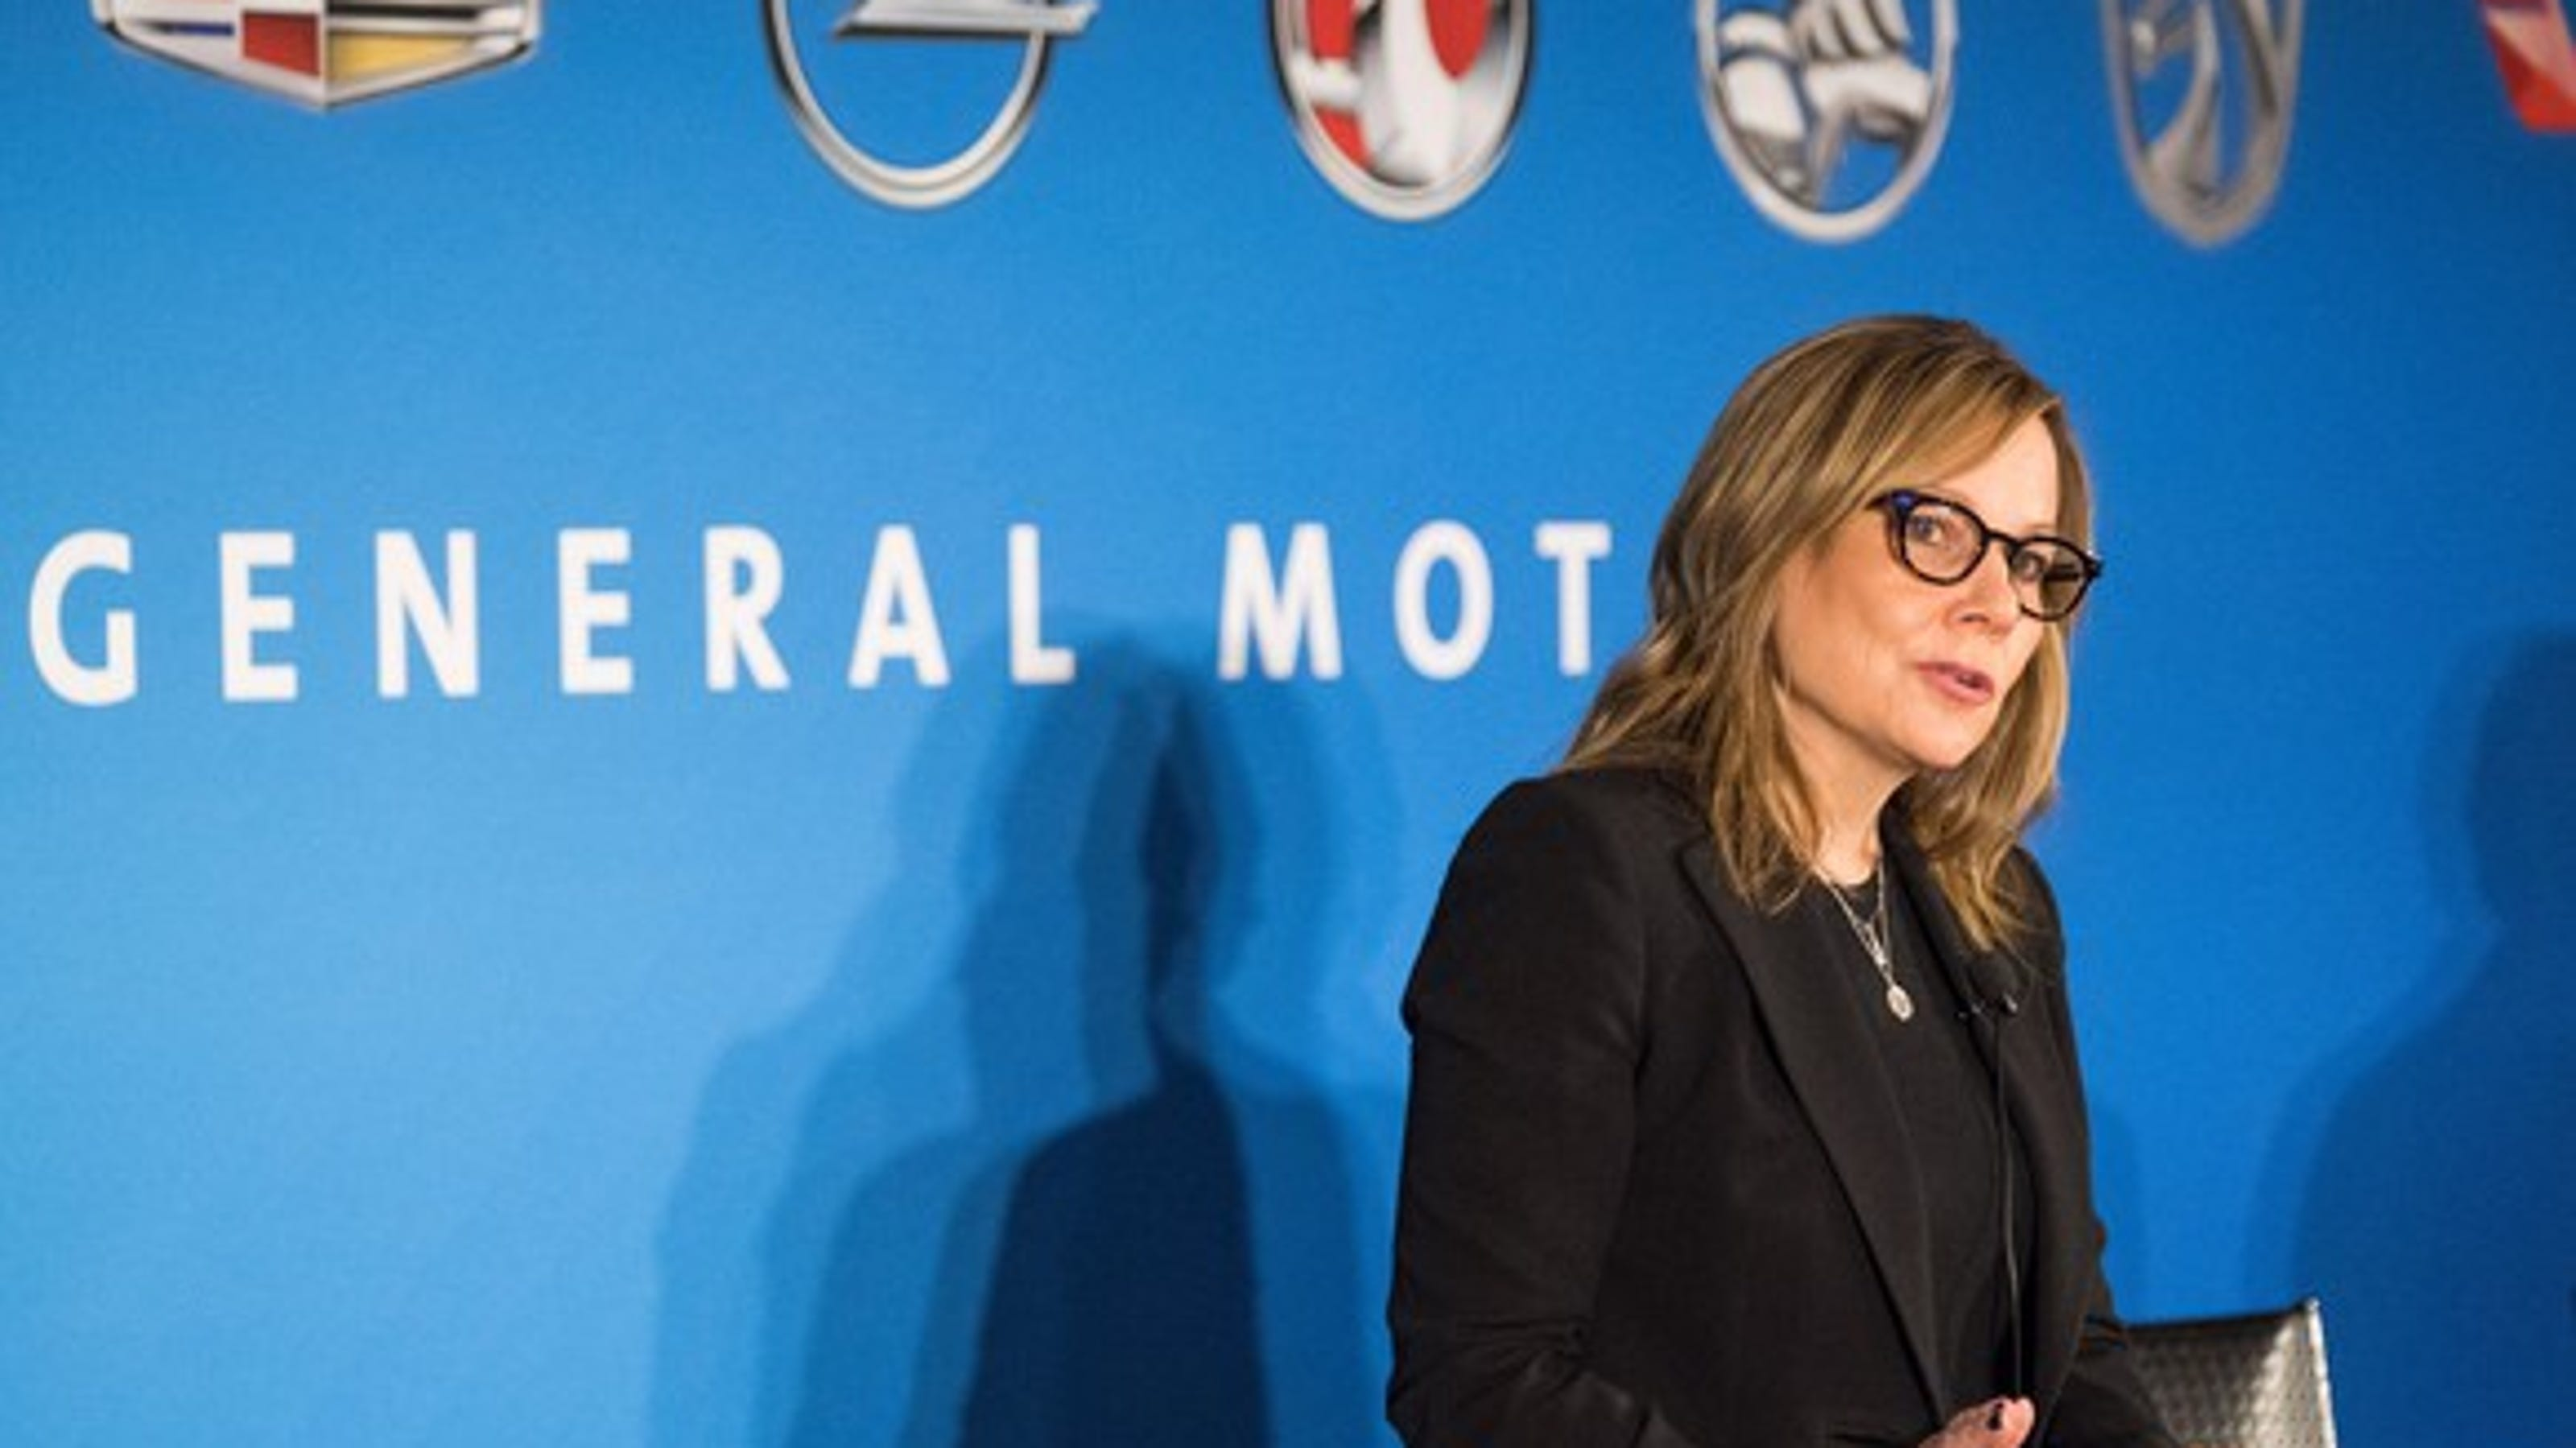 Why Gm Ceo Mary Barra Killed Chevrolet Cars Approved Plant Closures